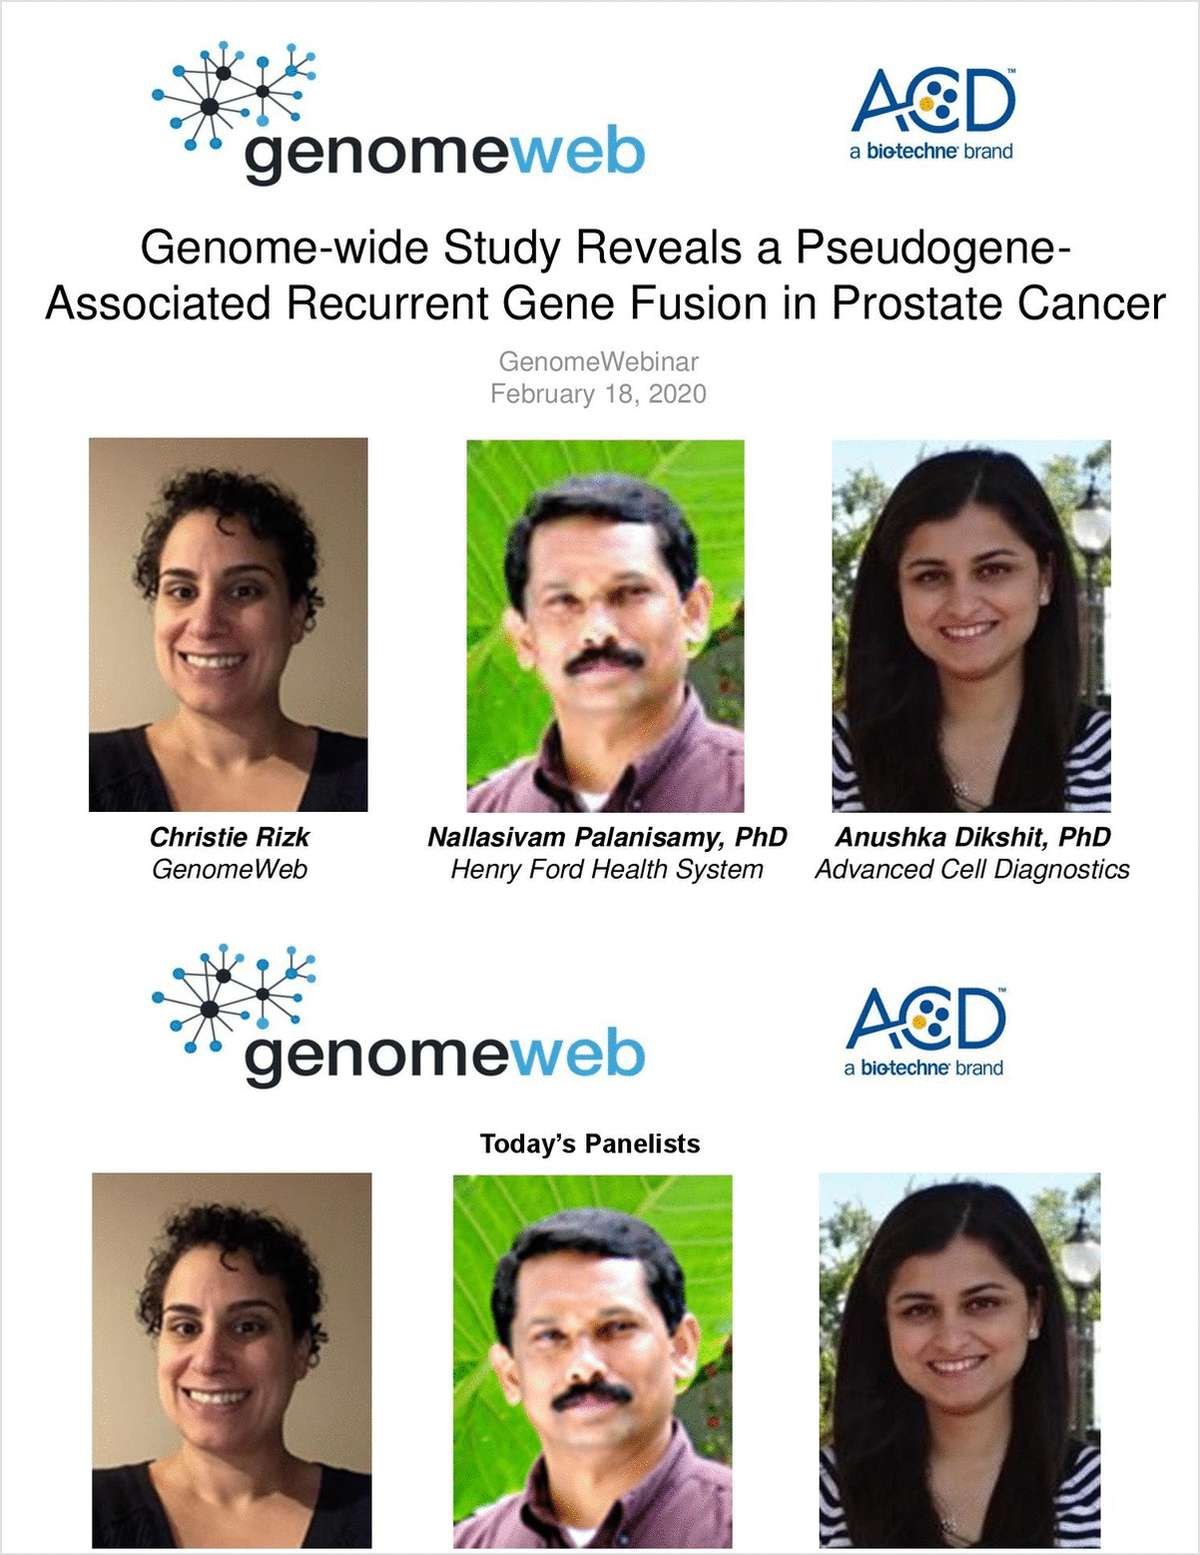 Genome-wide Study Reveals a Pseudogene Associated Recurrent Gene Fusion in Prostate Cancer Slideshow